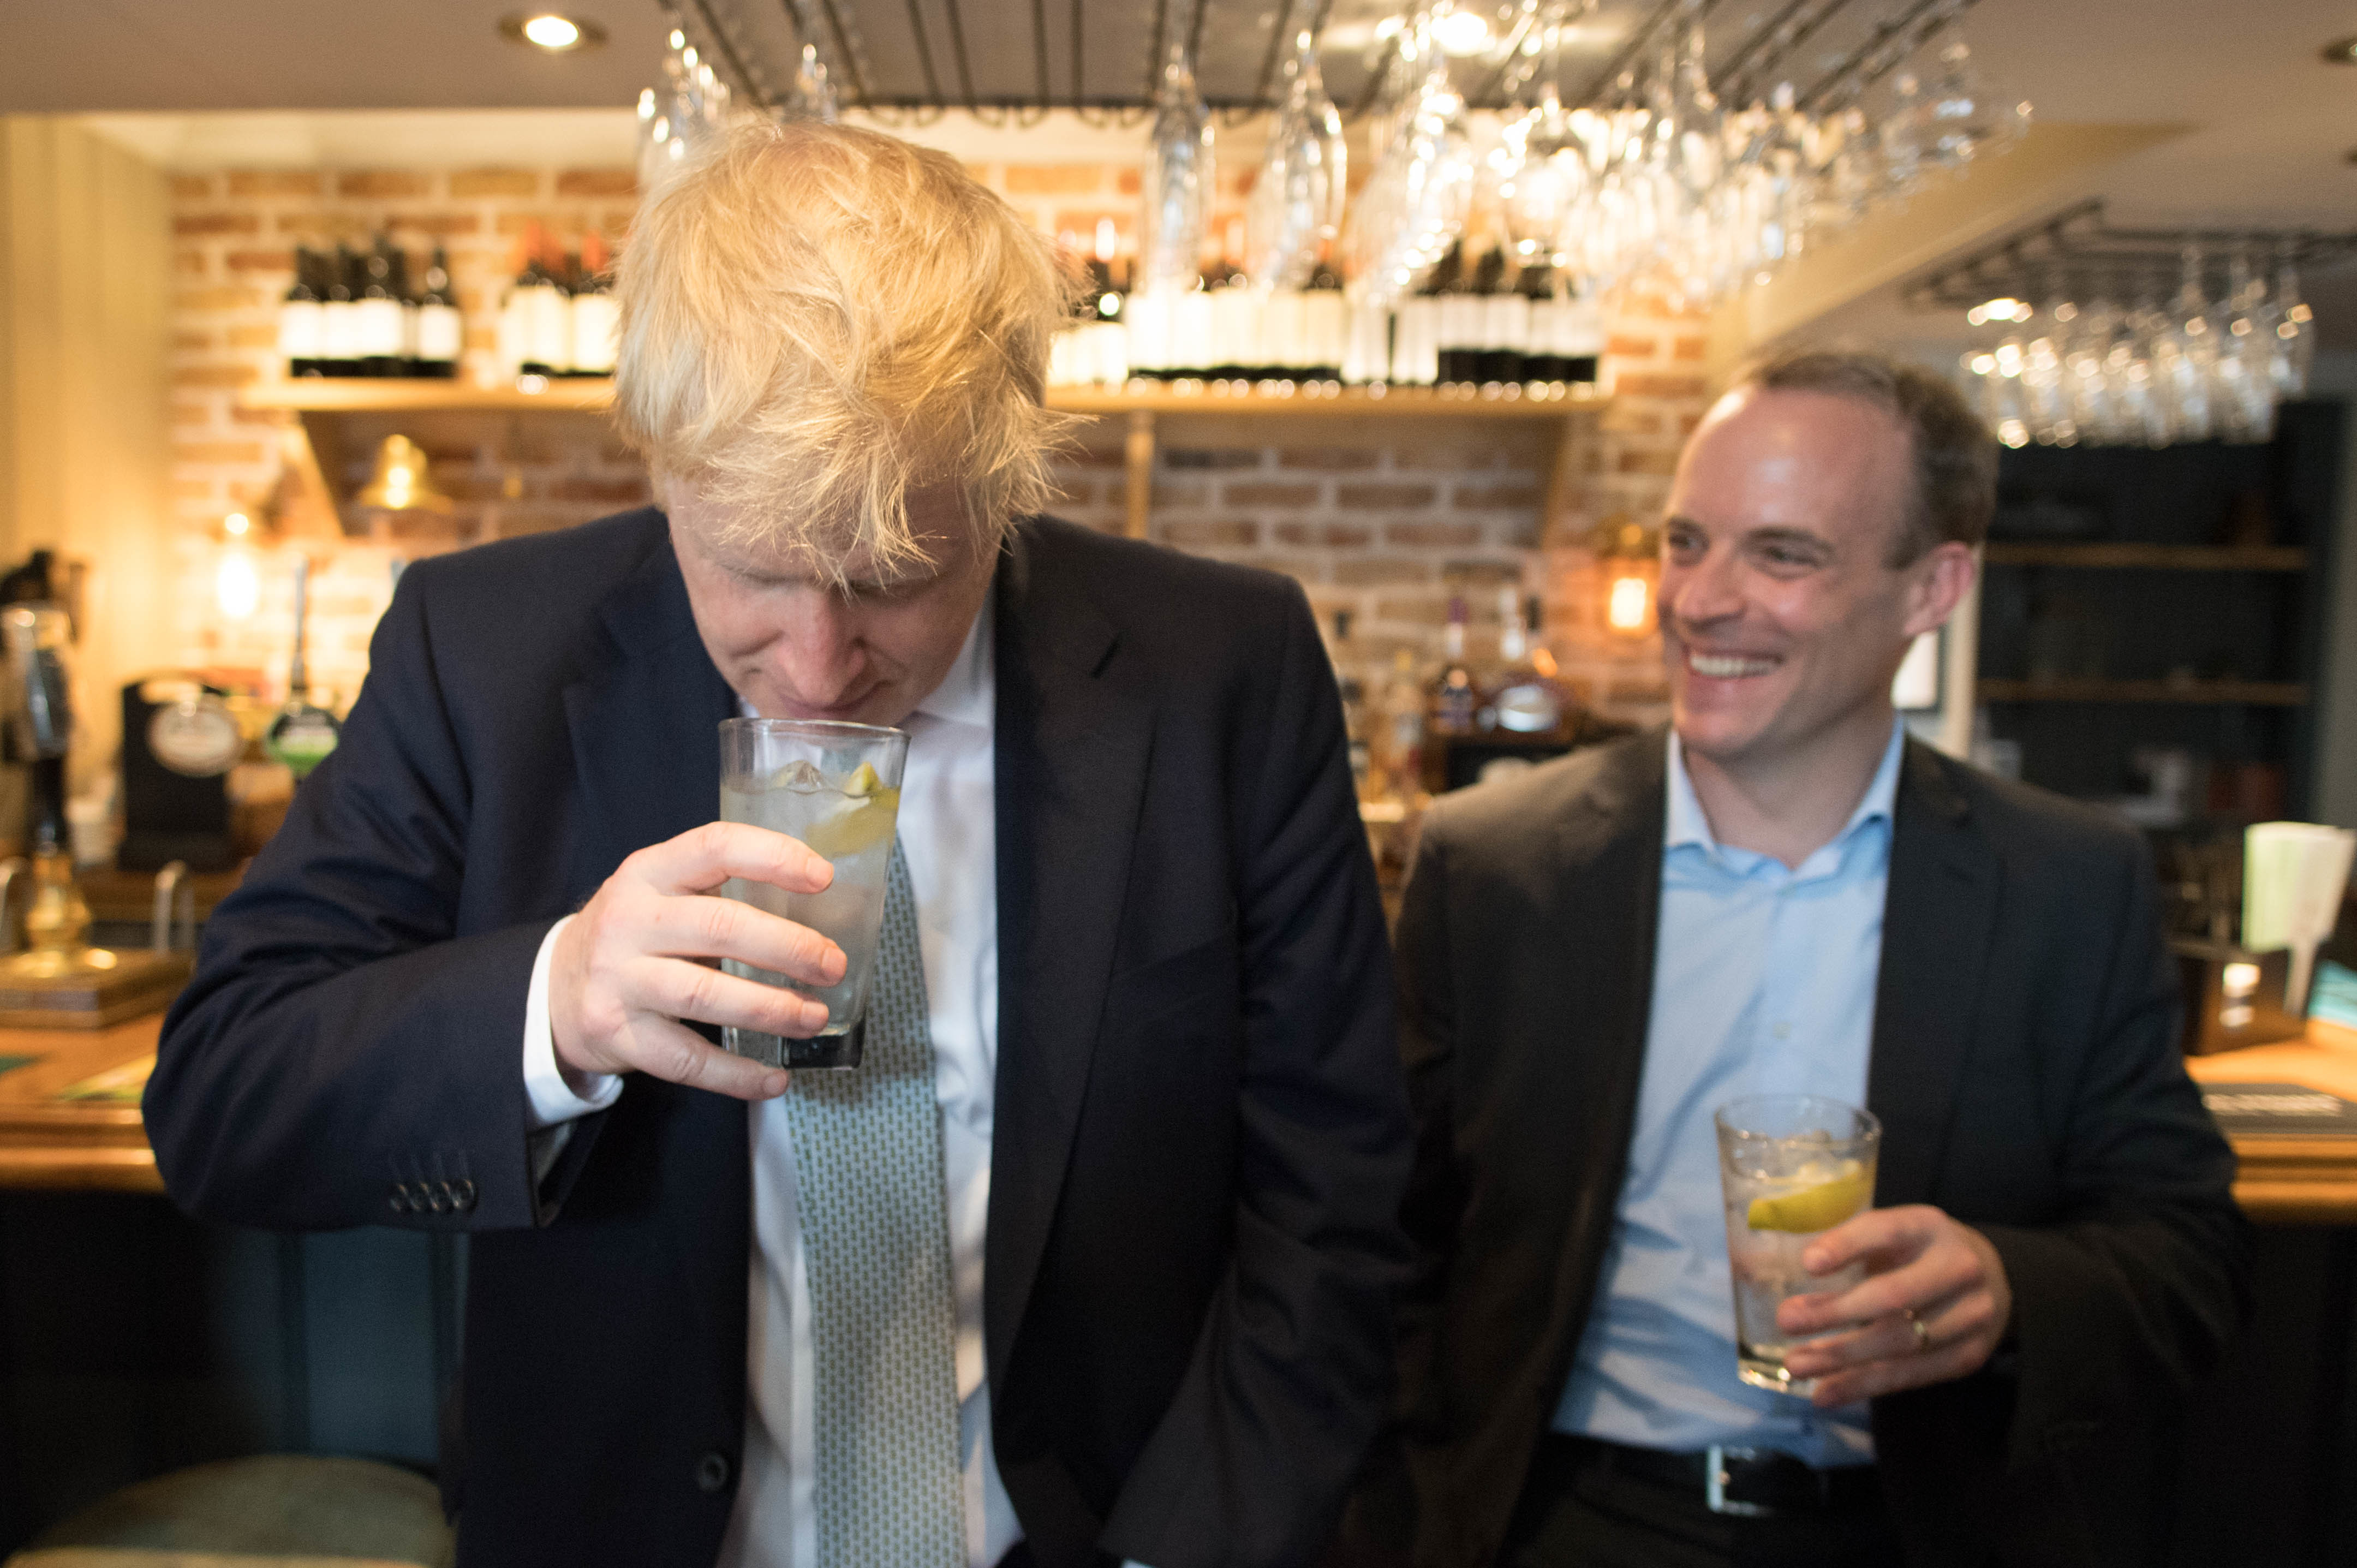 Conservative party leadership candidate Boris Johnson (left) and Dominic Rabb in The Victoria public house in Oxshott, Surrey.